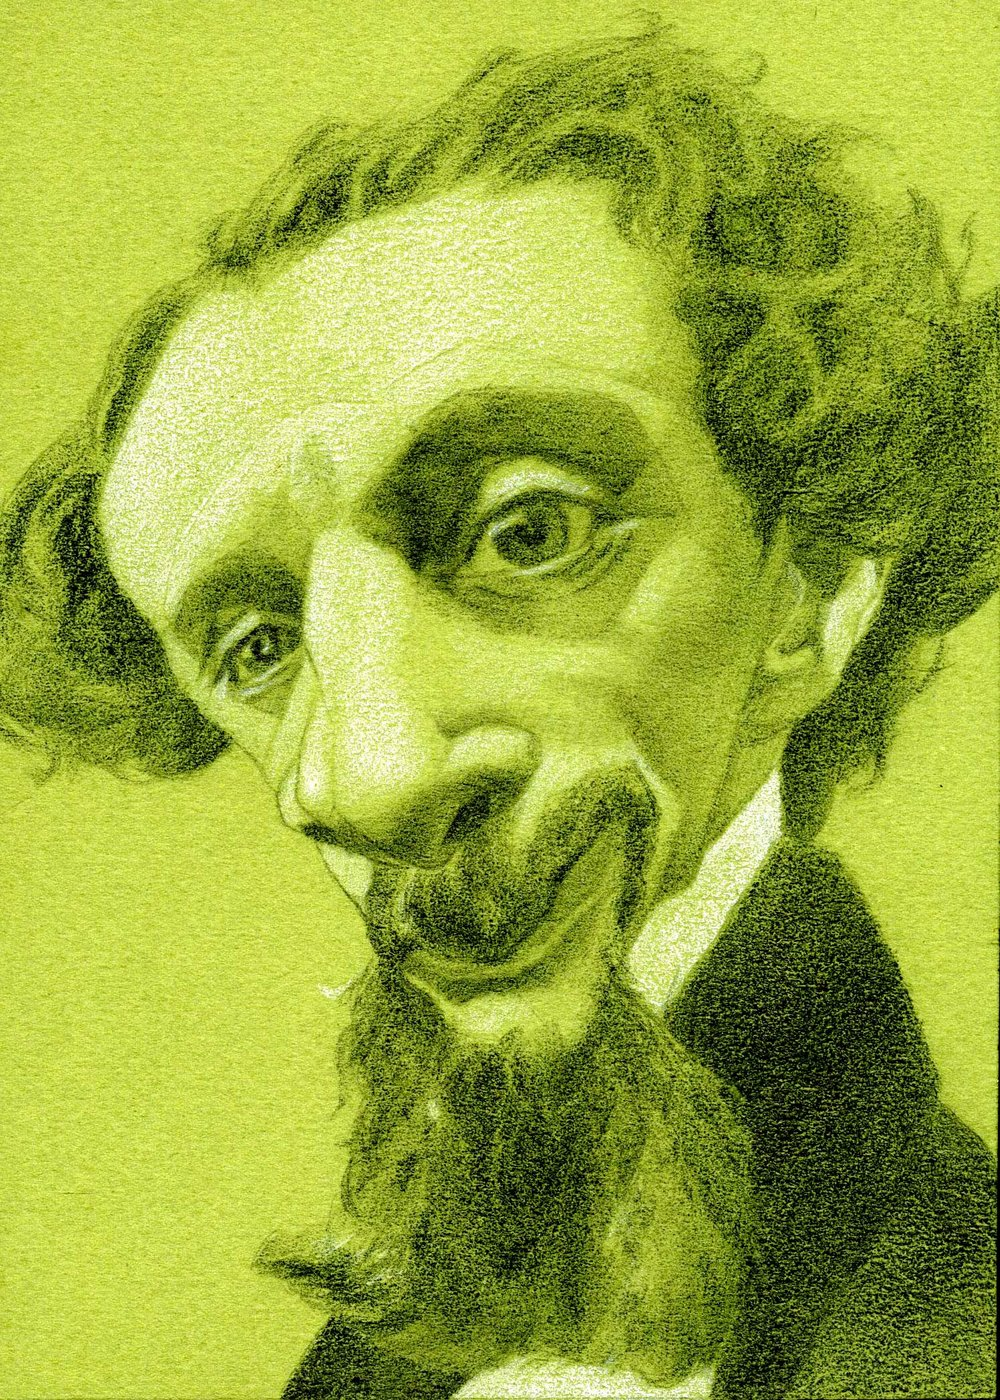 Charles Dickens , 2017  Pencil on paper  5 x 7 inches